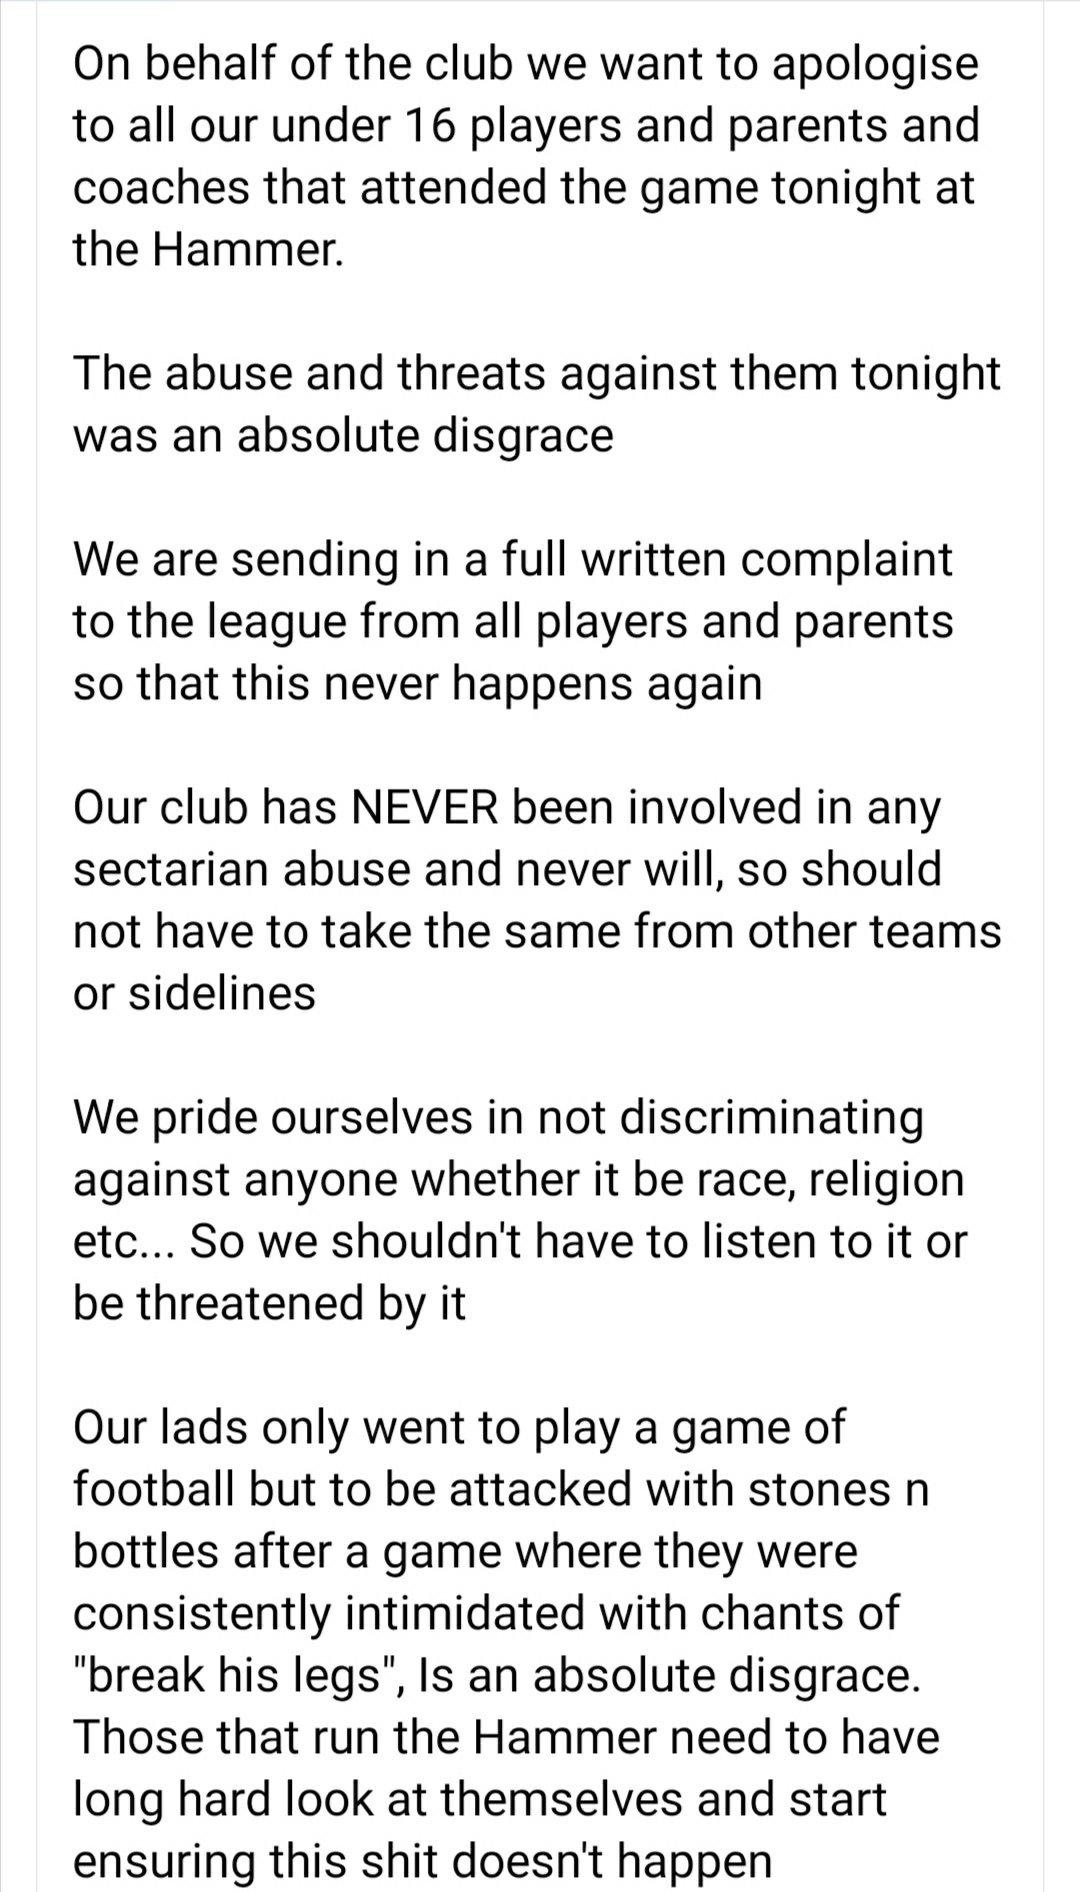 More Loyalist/Unionist sectarian abuse at Catholic children 'Under 16' trying to enjoy a game of non-sectarianfootball